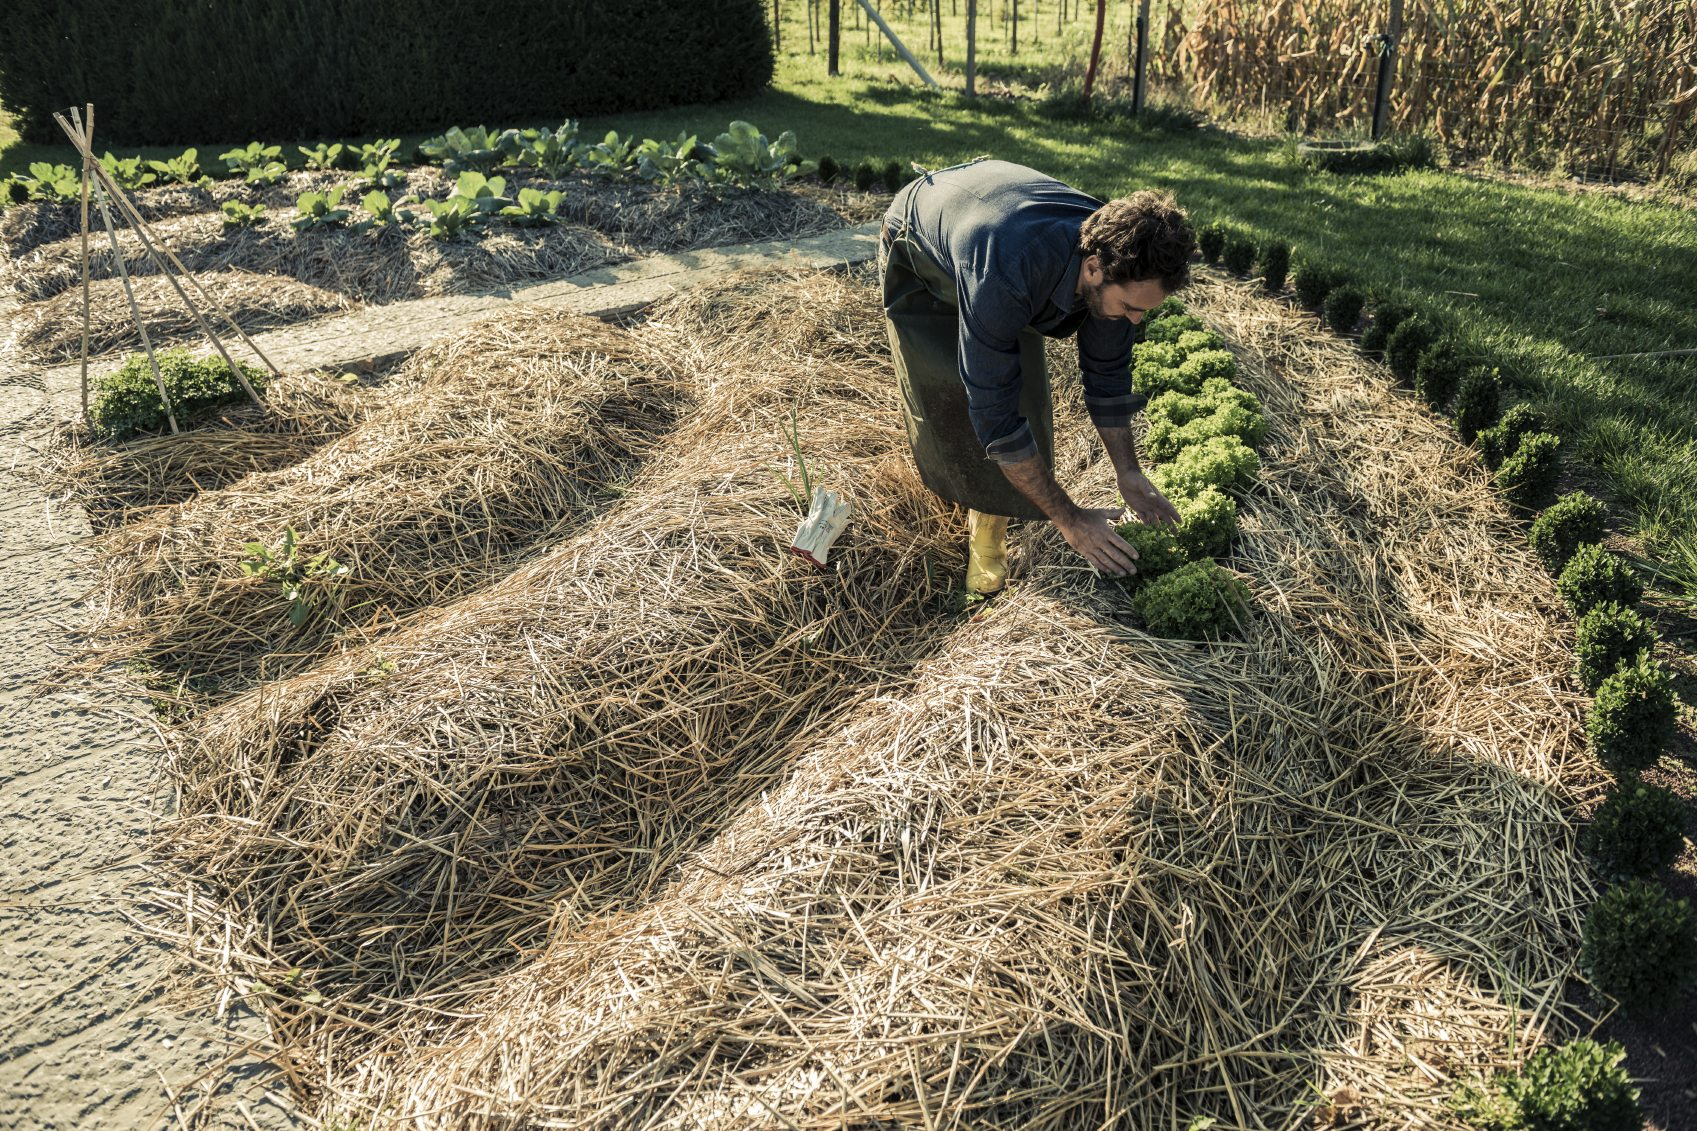 Mulching Veggie Beds How And When To Add Mulch In Vegetable Gardens